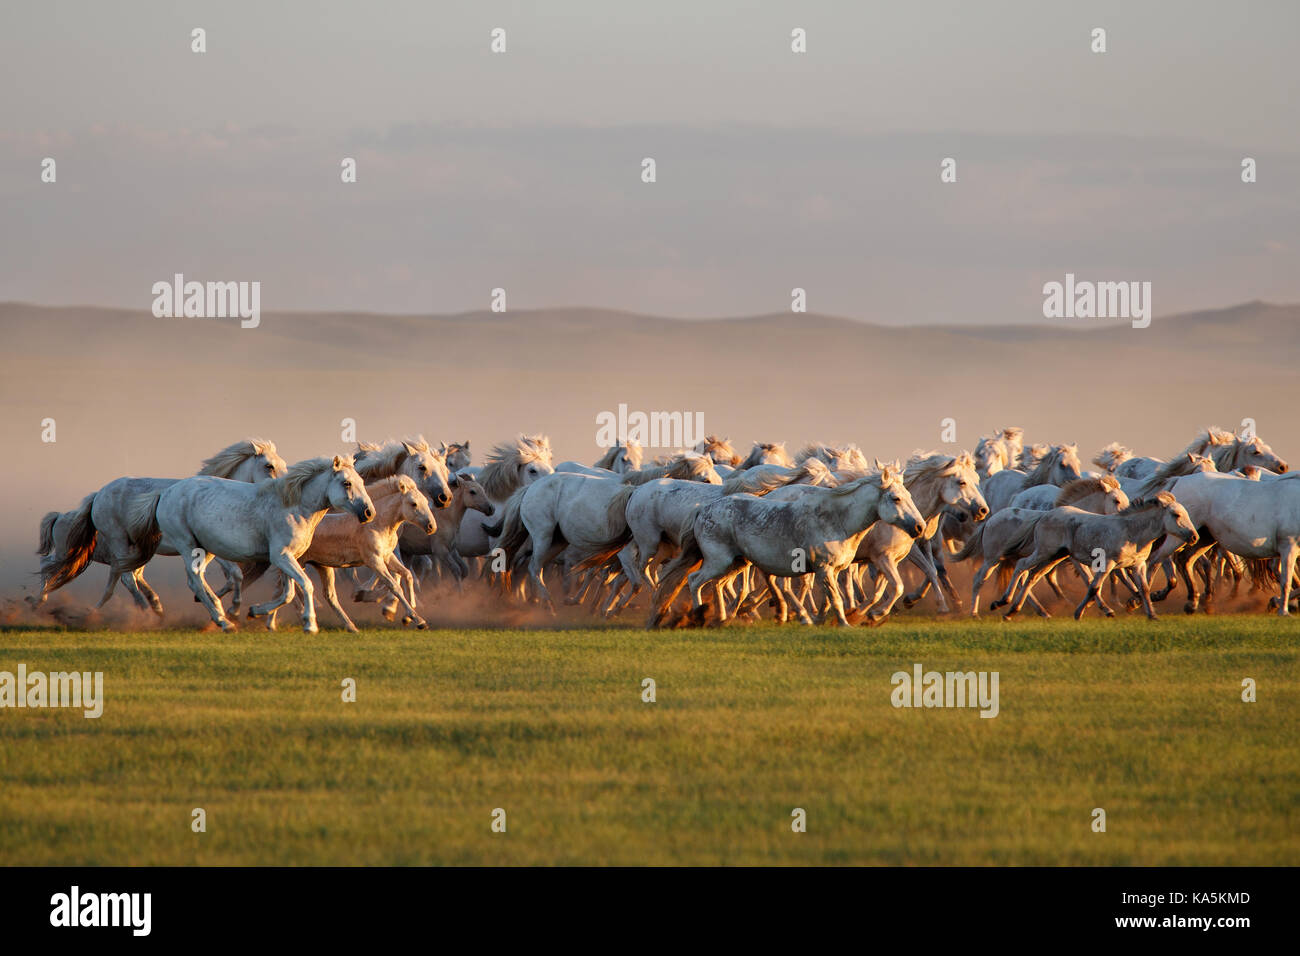 Mongolian white wild horses running on the endless grasslands - Stock Image